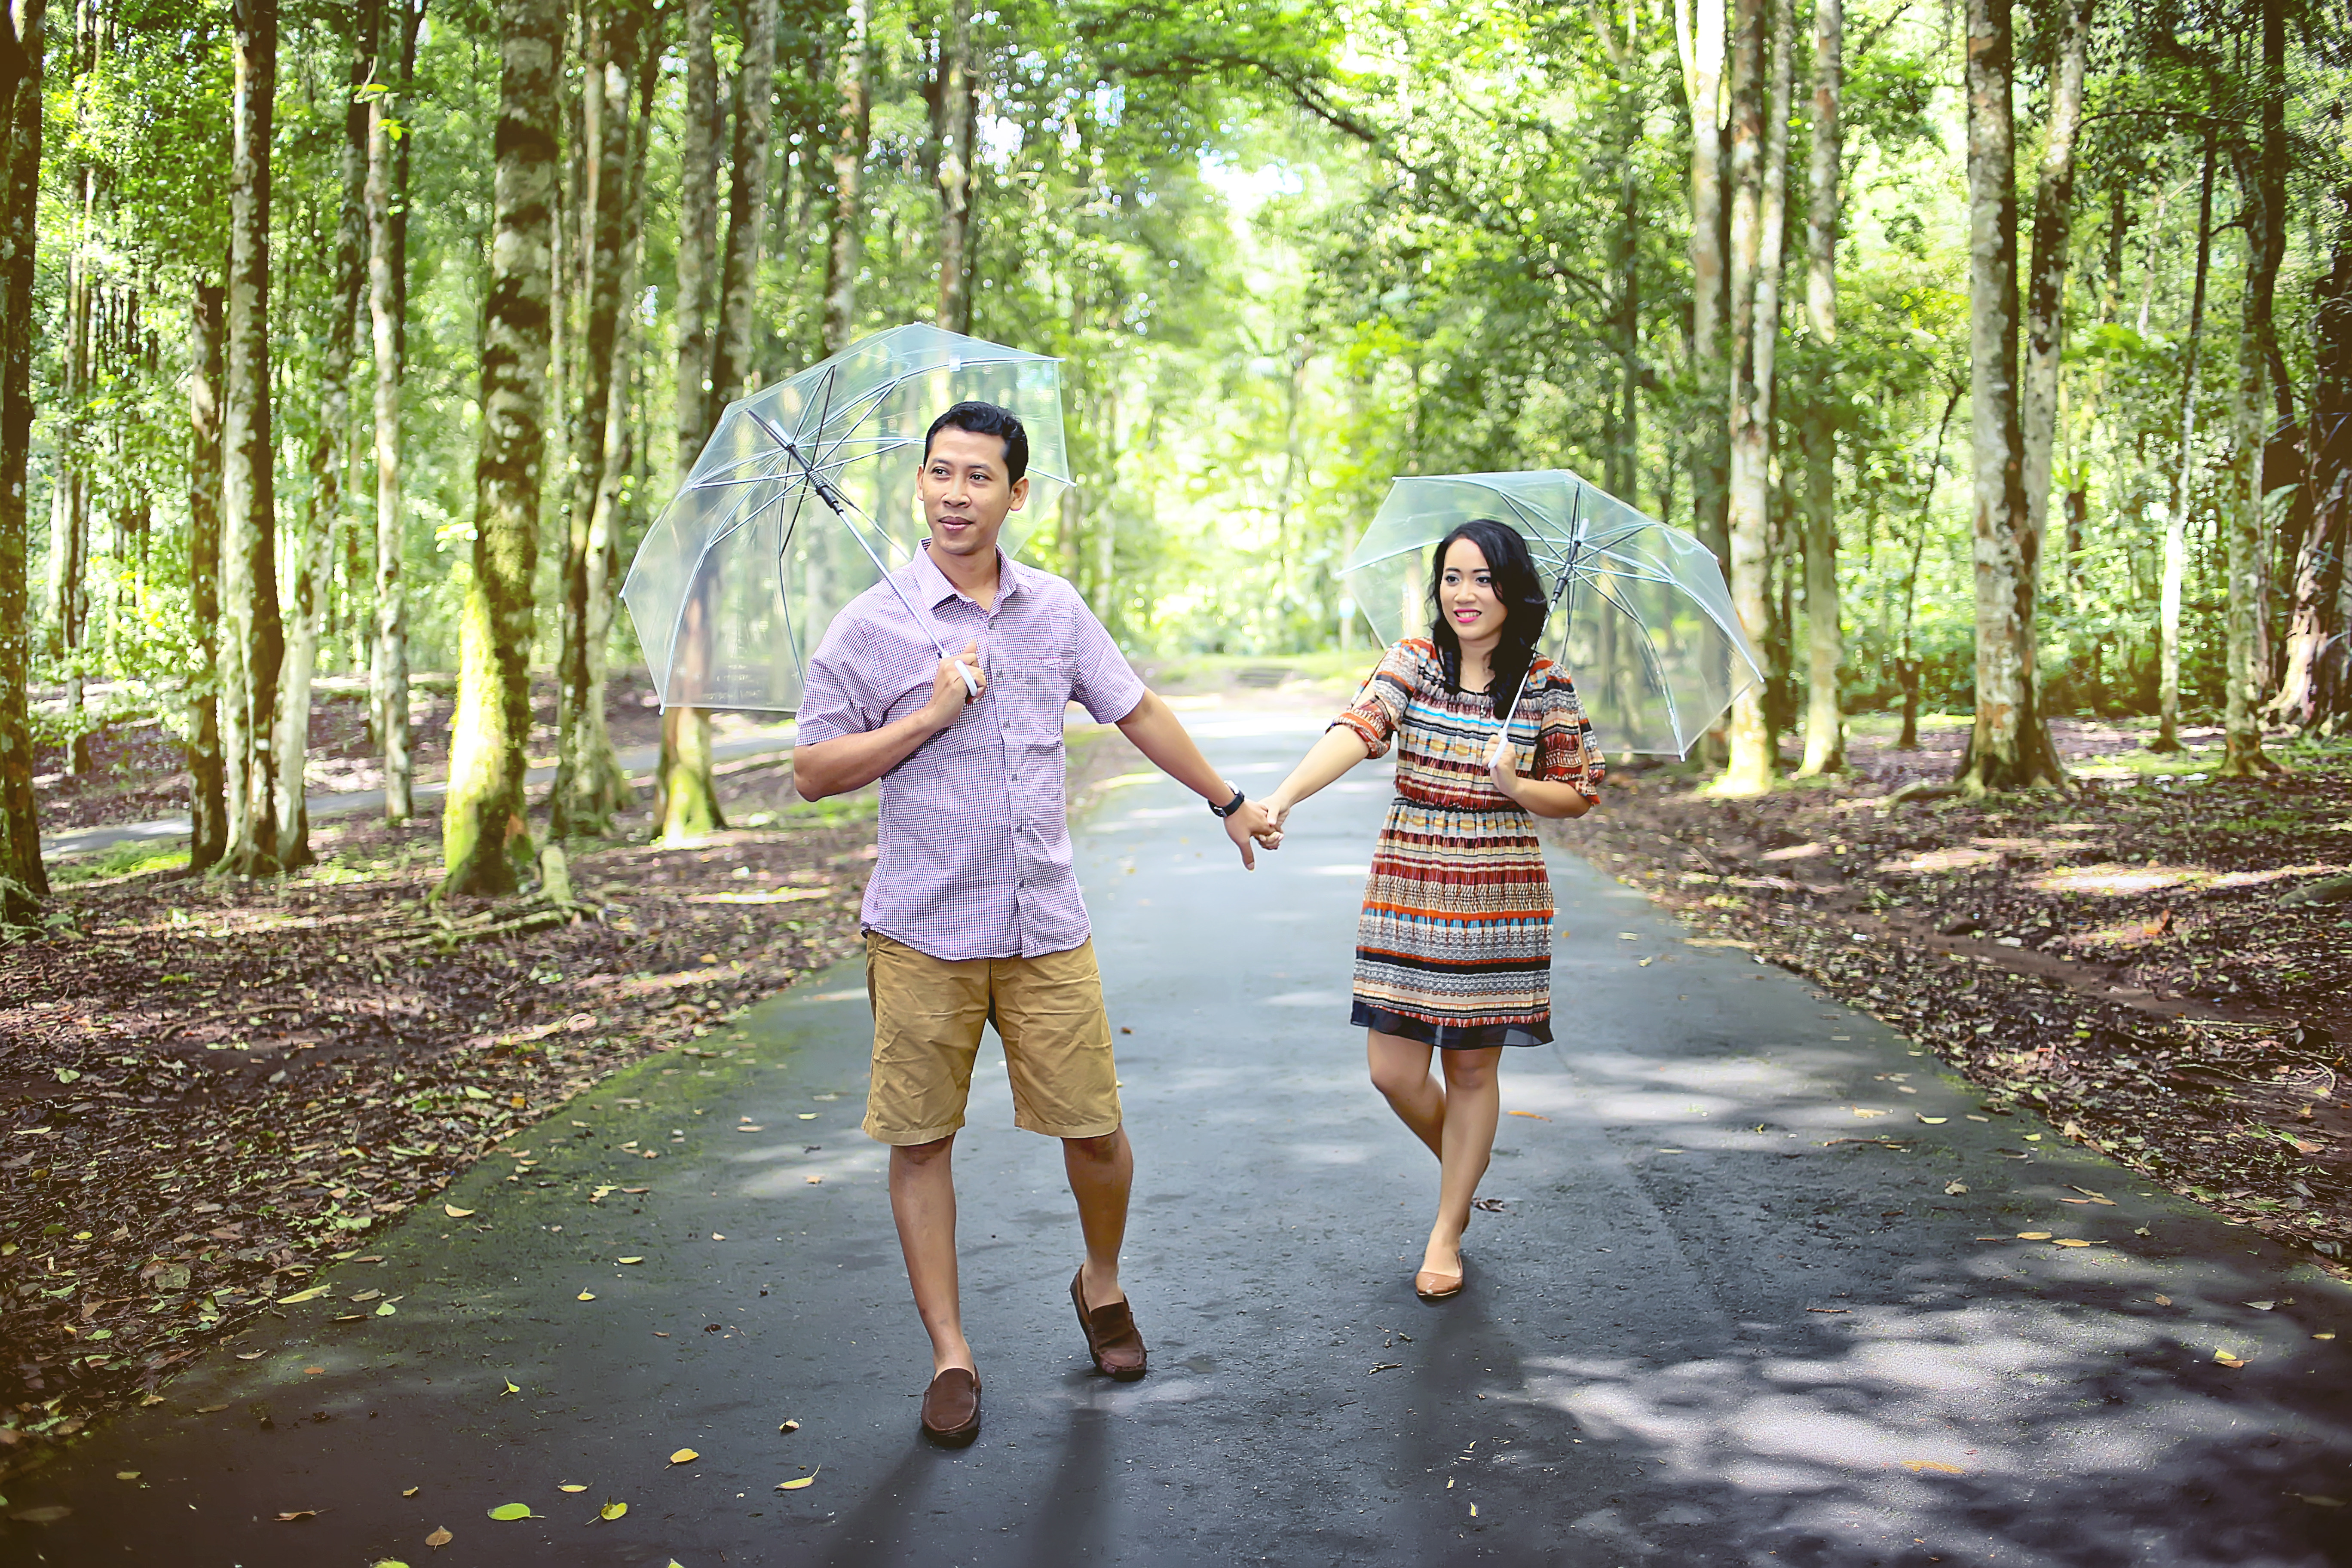 Outdoor Bali Pre-Wedding Photo